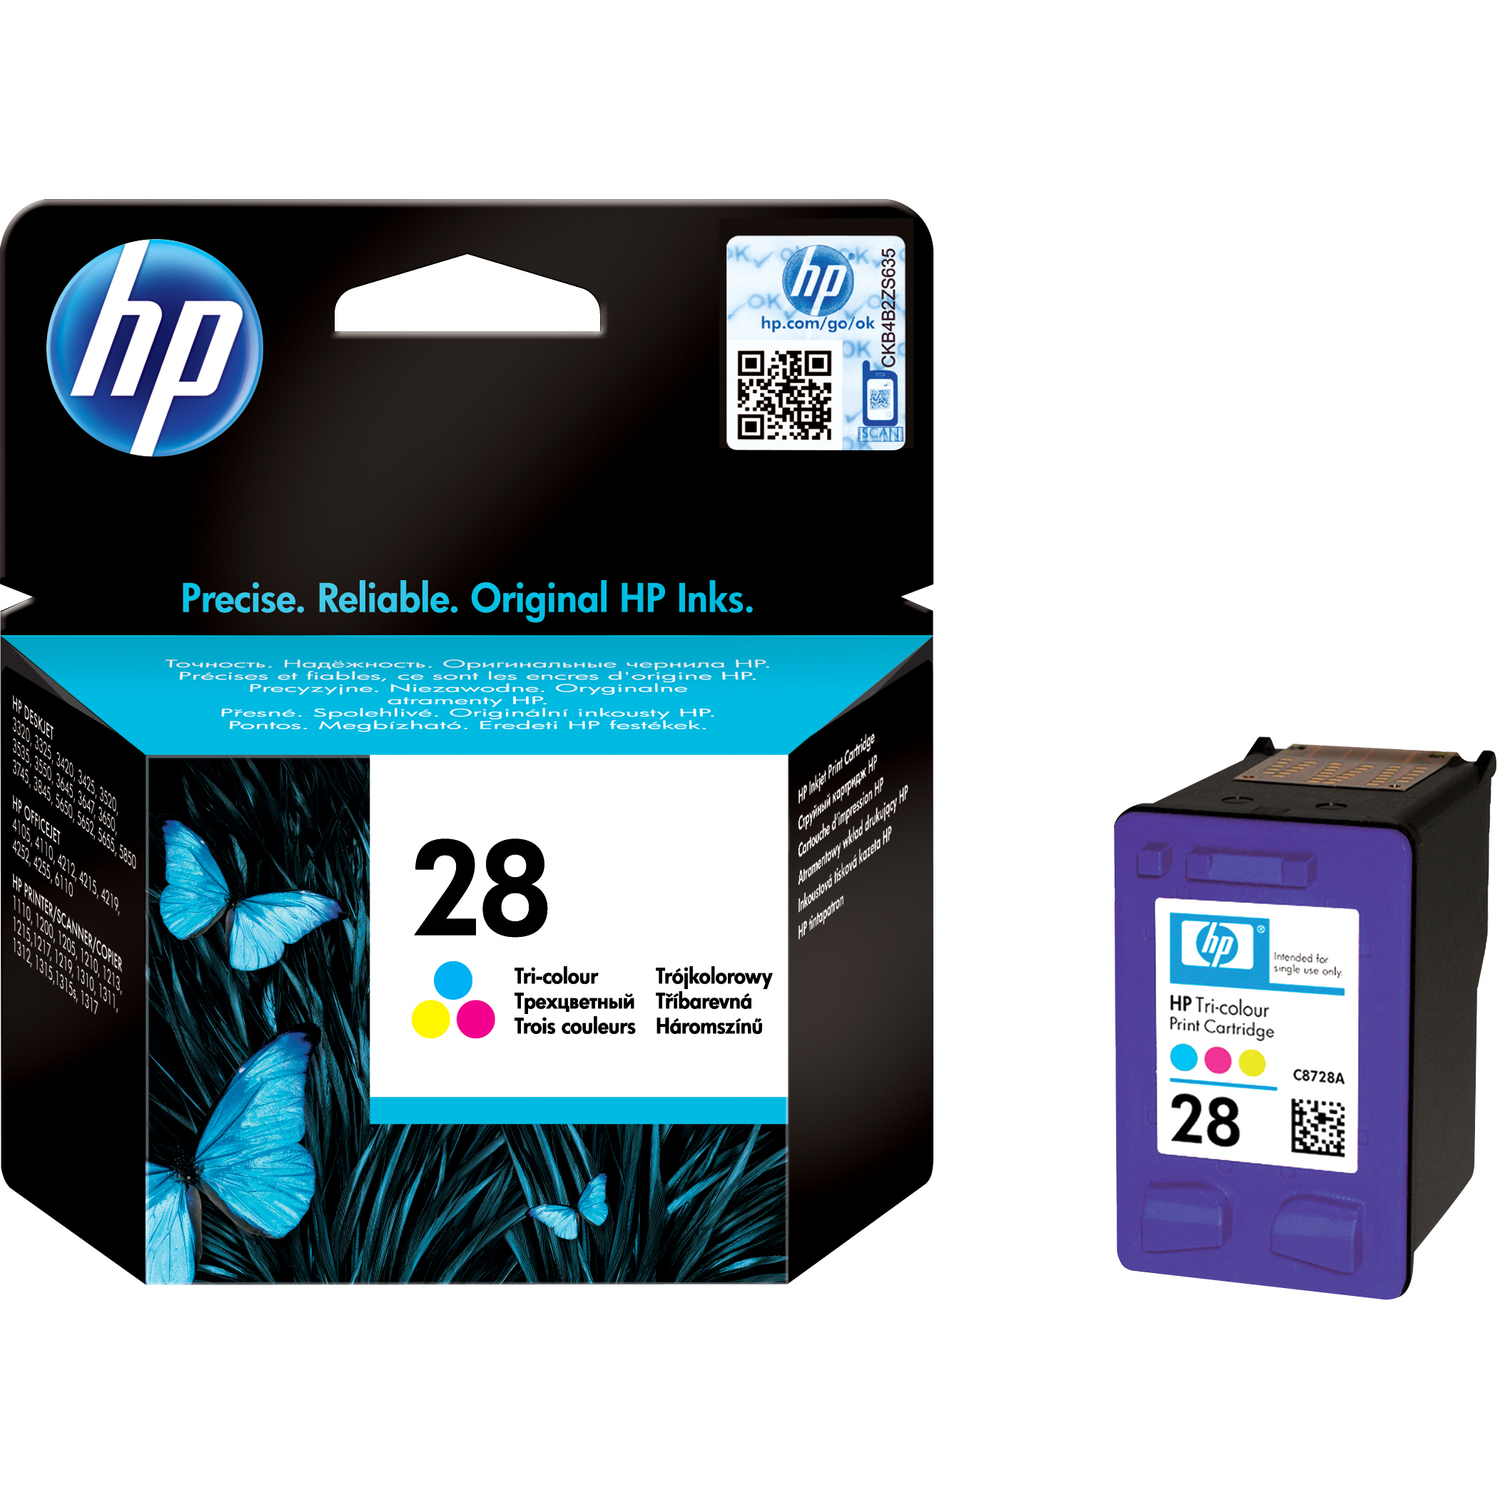 HP No. 28 Ink Cartridge - Cyan, Magenta, Yellow